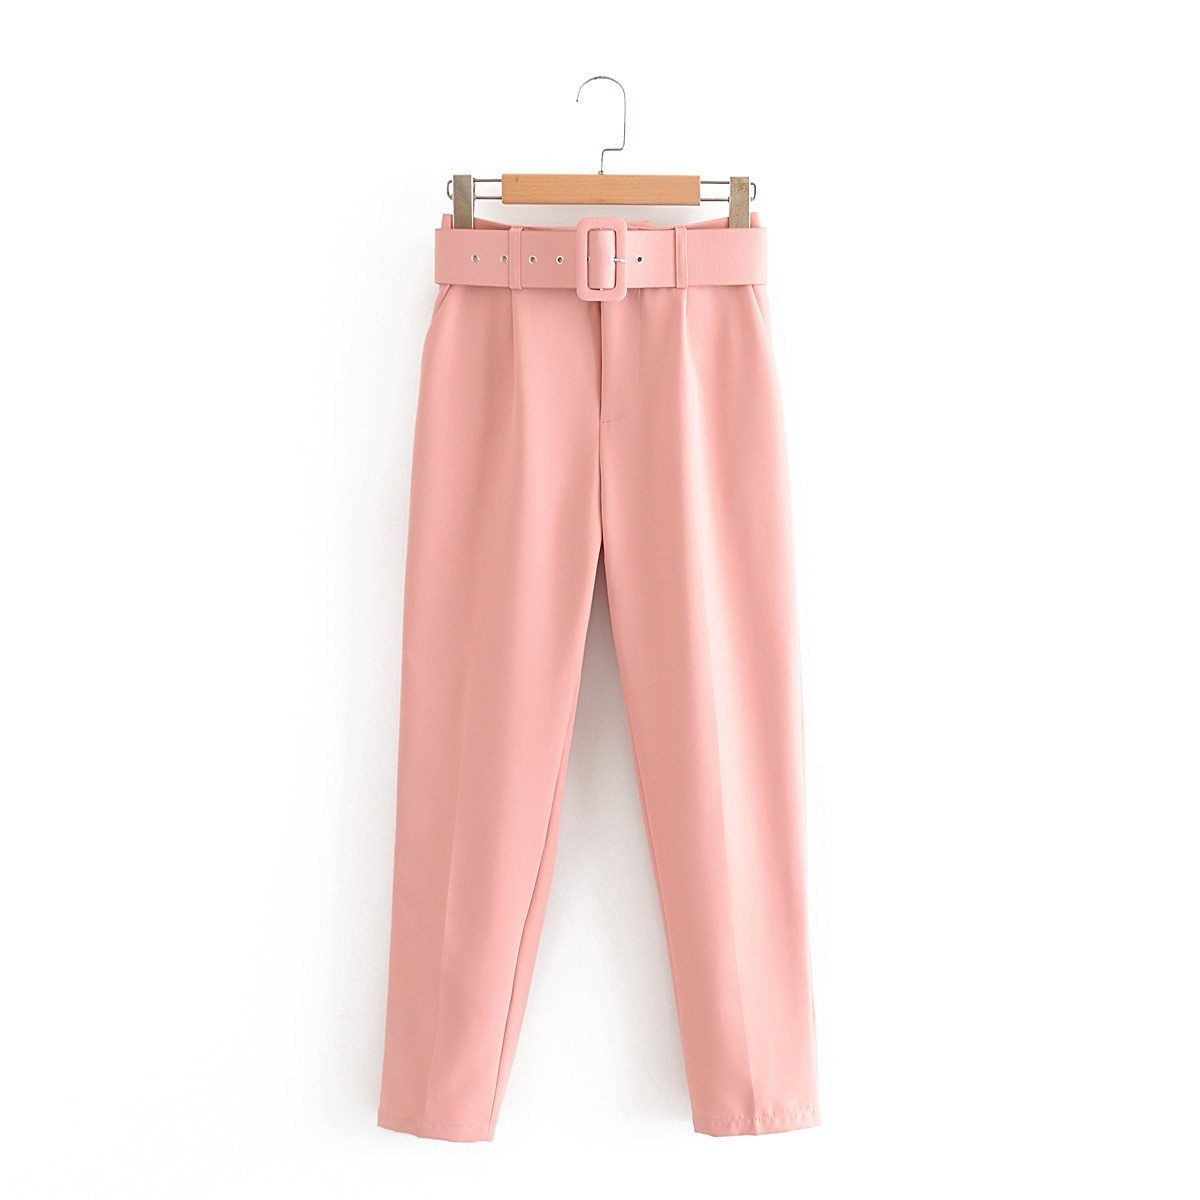 Photo of Aonibeier Elegant Career Pant Office Lady High Waist Straight Pants Belt Casual Ankle Length Women Trousers Suit Sashes Pockets – Pink / XS